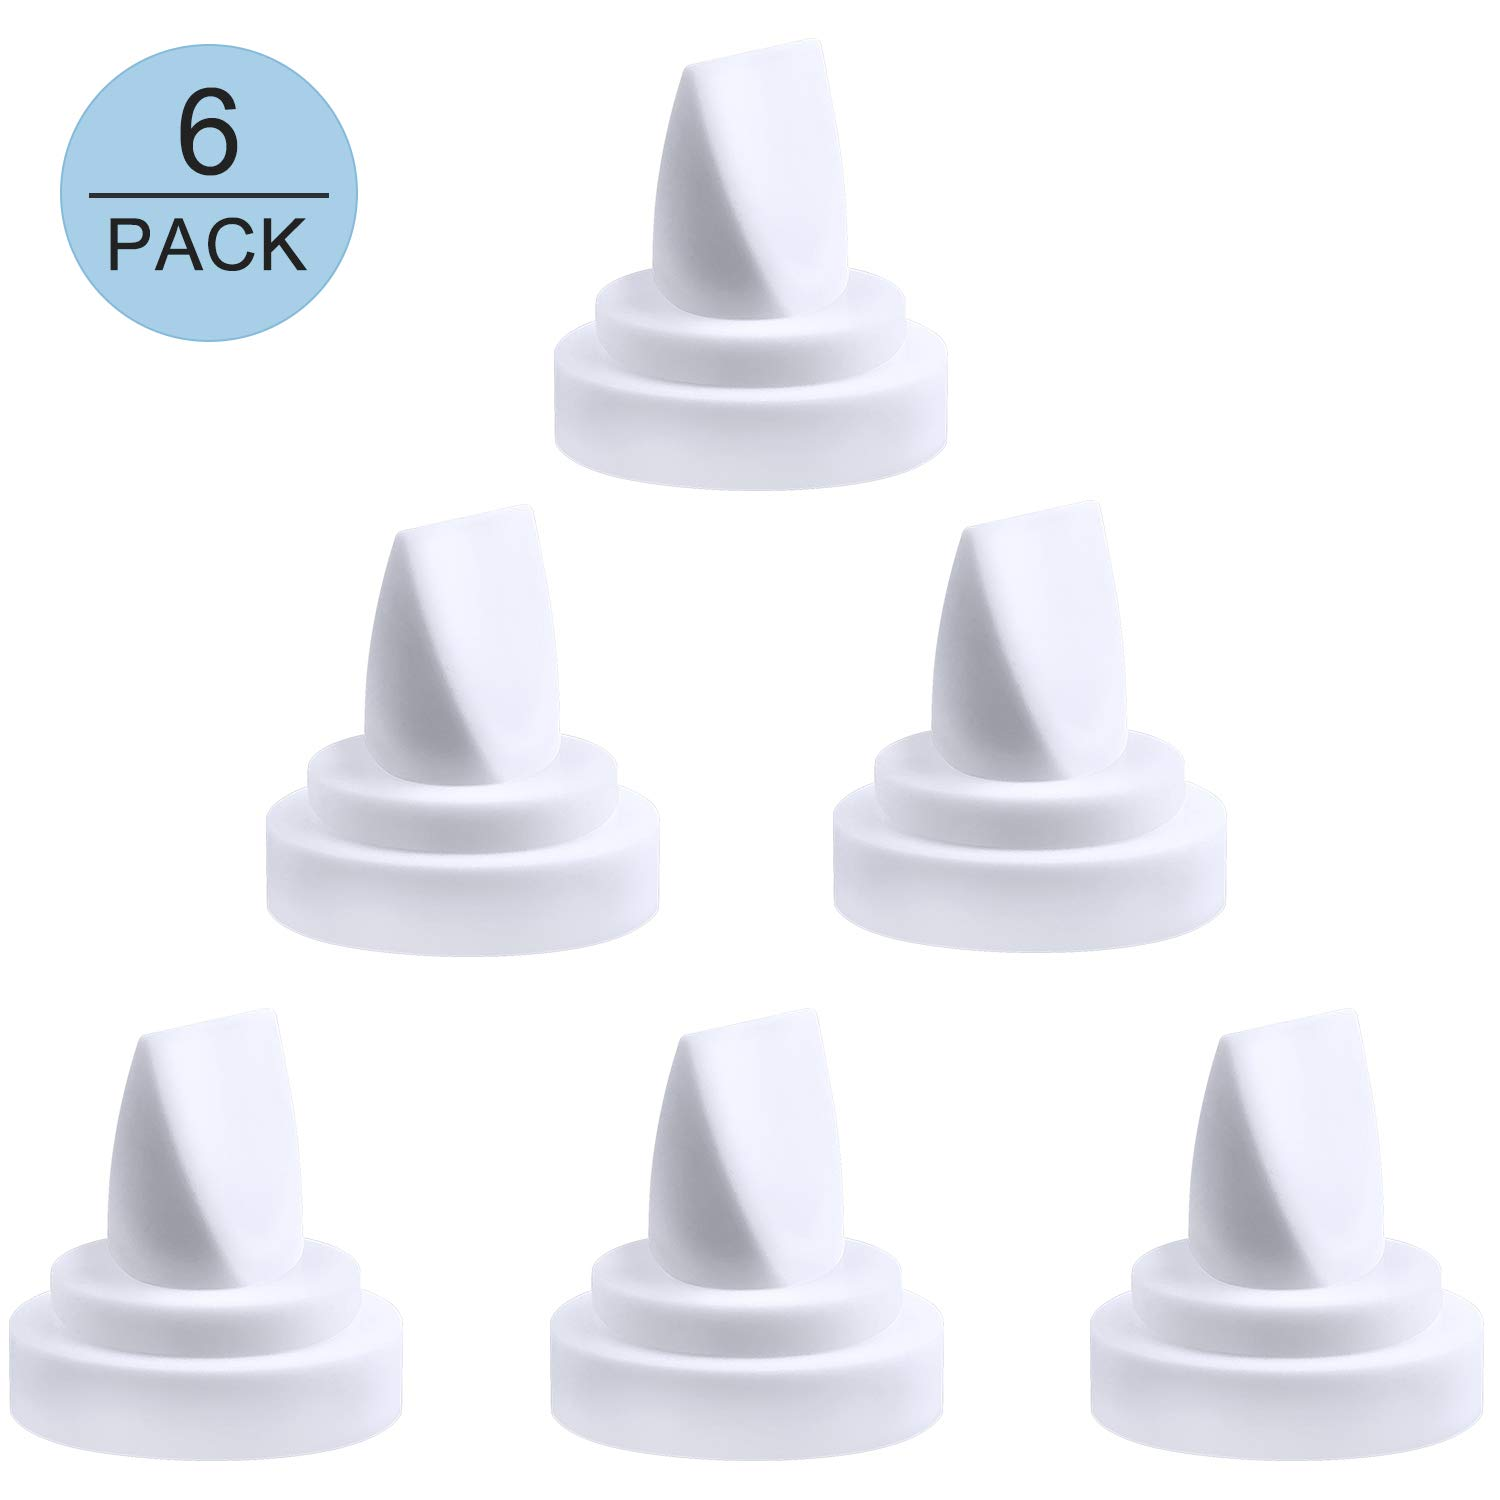 Duckbill Valves for Medela and Spectra, Tinabless 6 Count Pump Duckbill Valve for Spectra S1 Spectra S2 Valves and Medela Pump in Style Valves